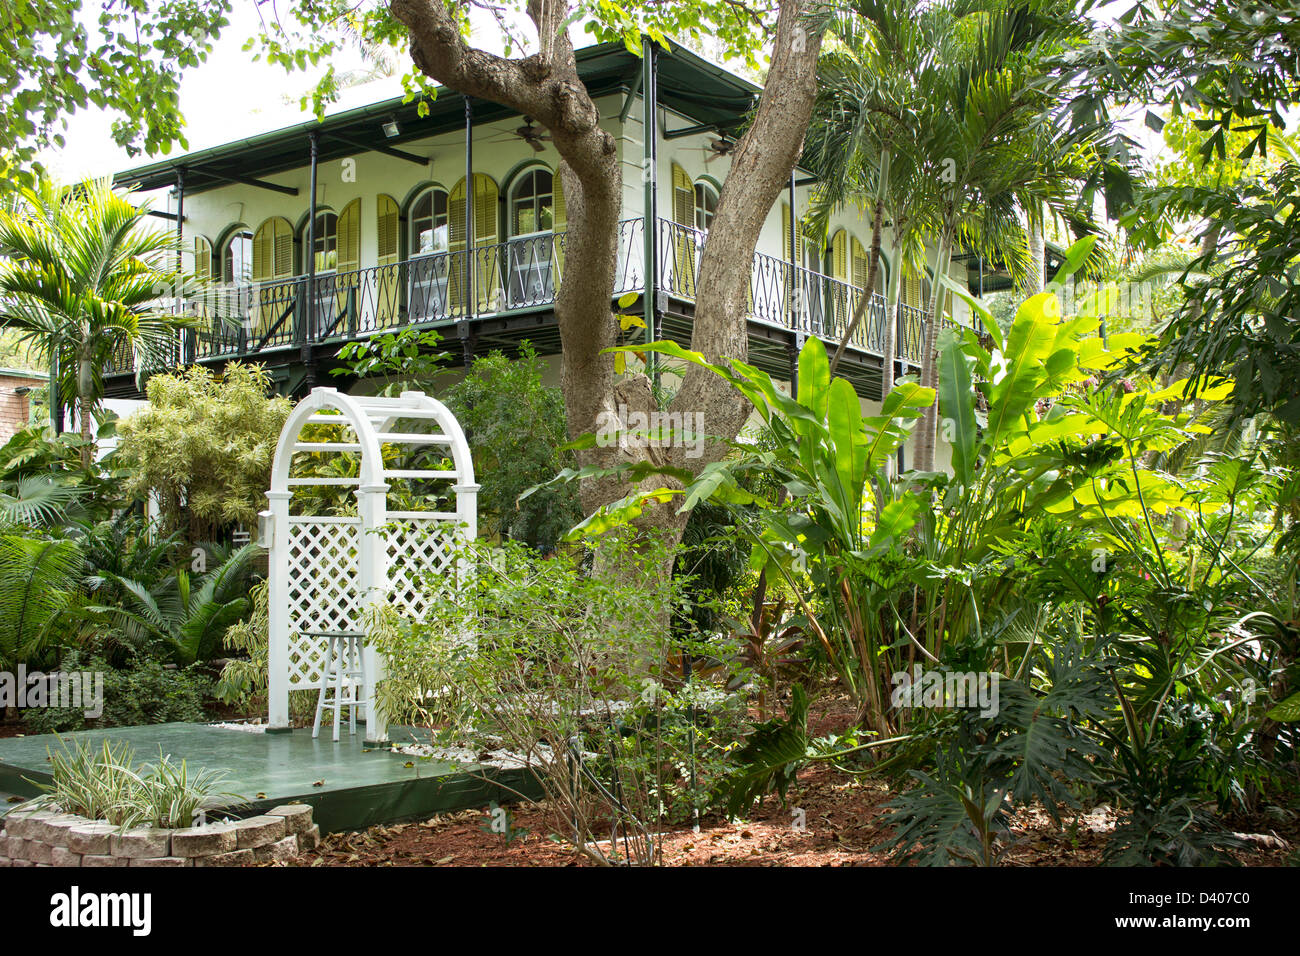 Ernest Hemingway House And Gardens. Key West, Florida.